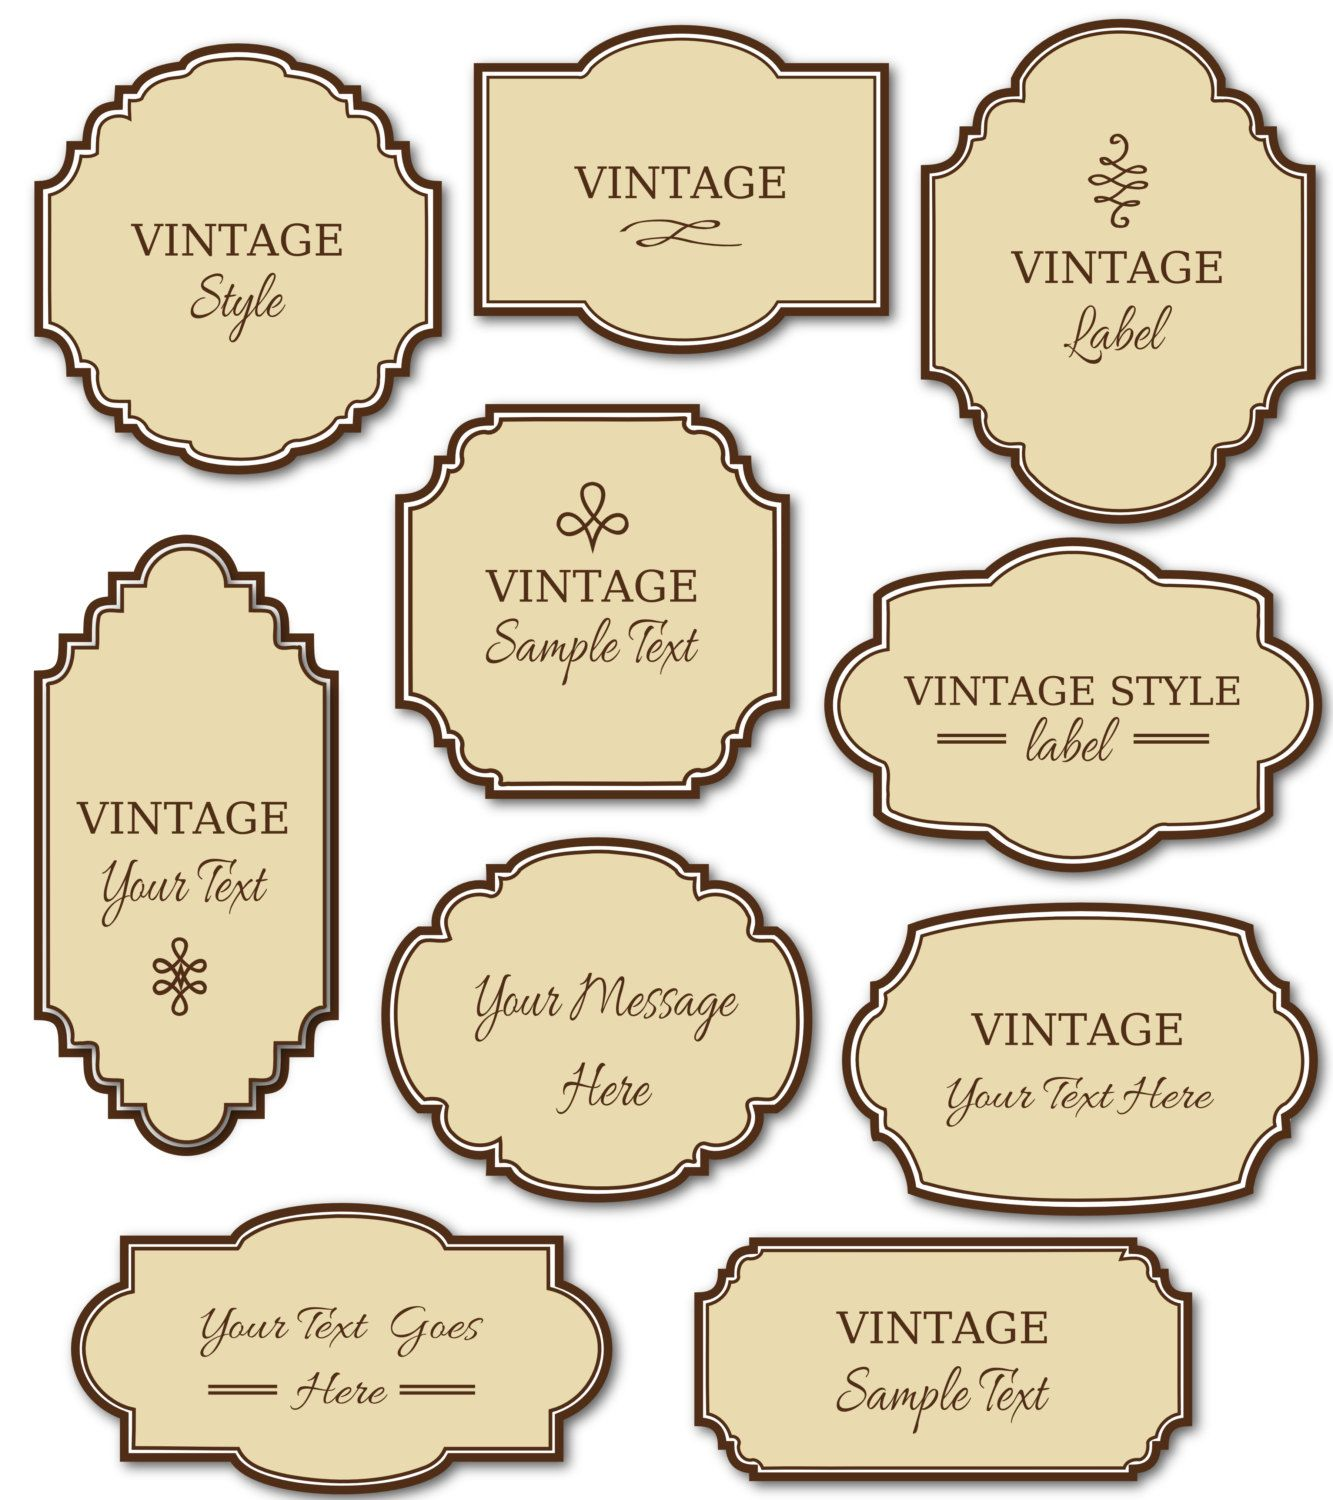 Vintage Perfume Label Prints | Request a custom order and ...